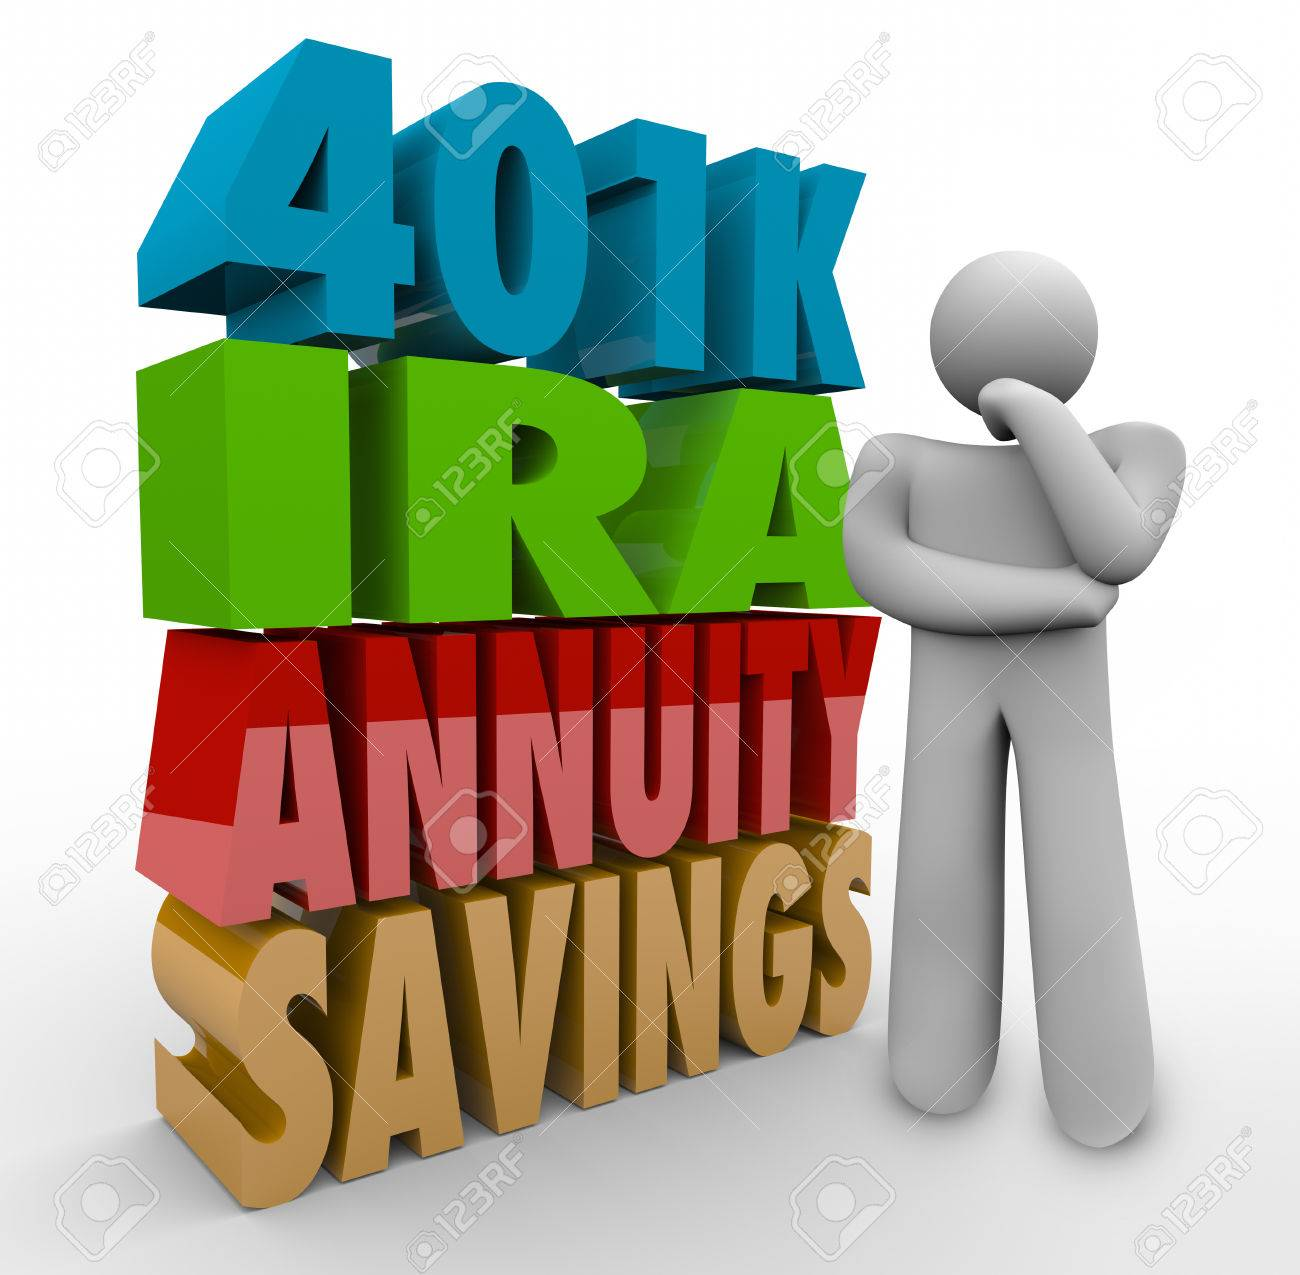 Stock Photo  The Words 401k, Ira, Annuity, Savings In 3d Letters Beside A  Thinking Person Confused Over What Is The Best Investment Option To Manage